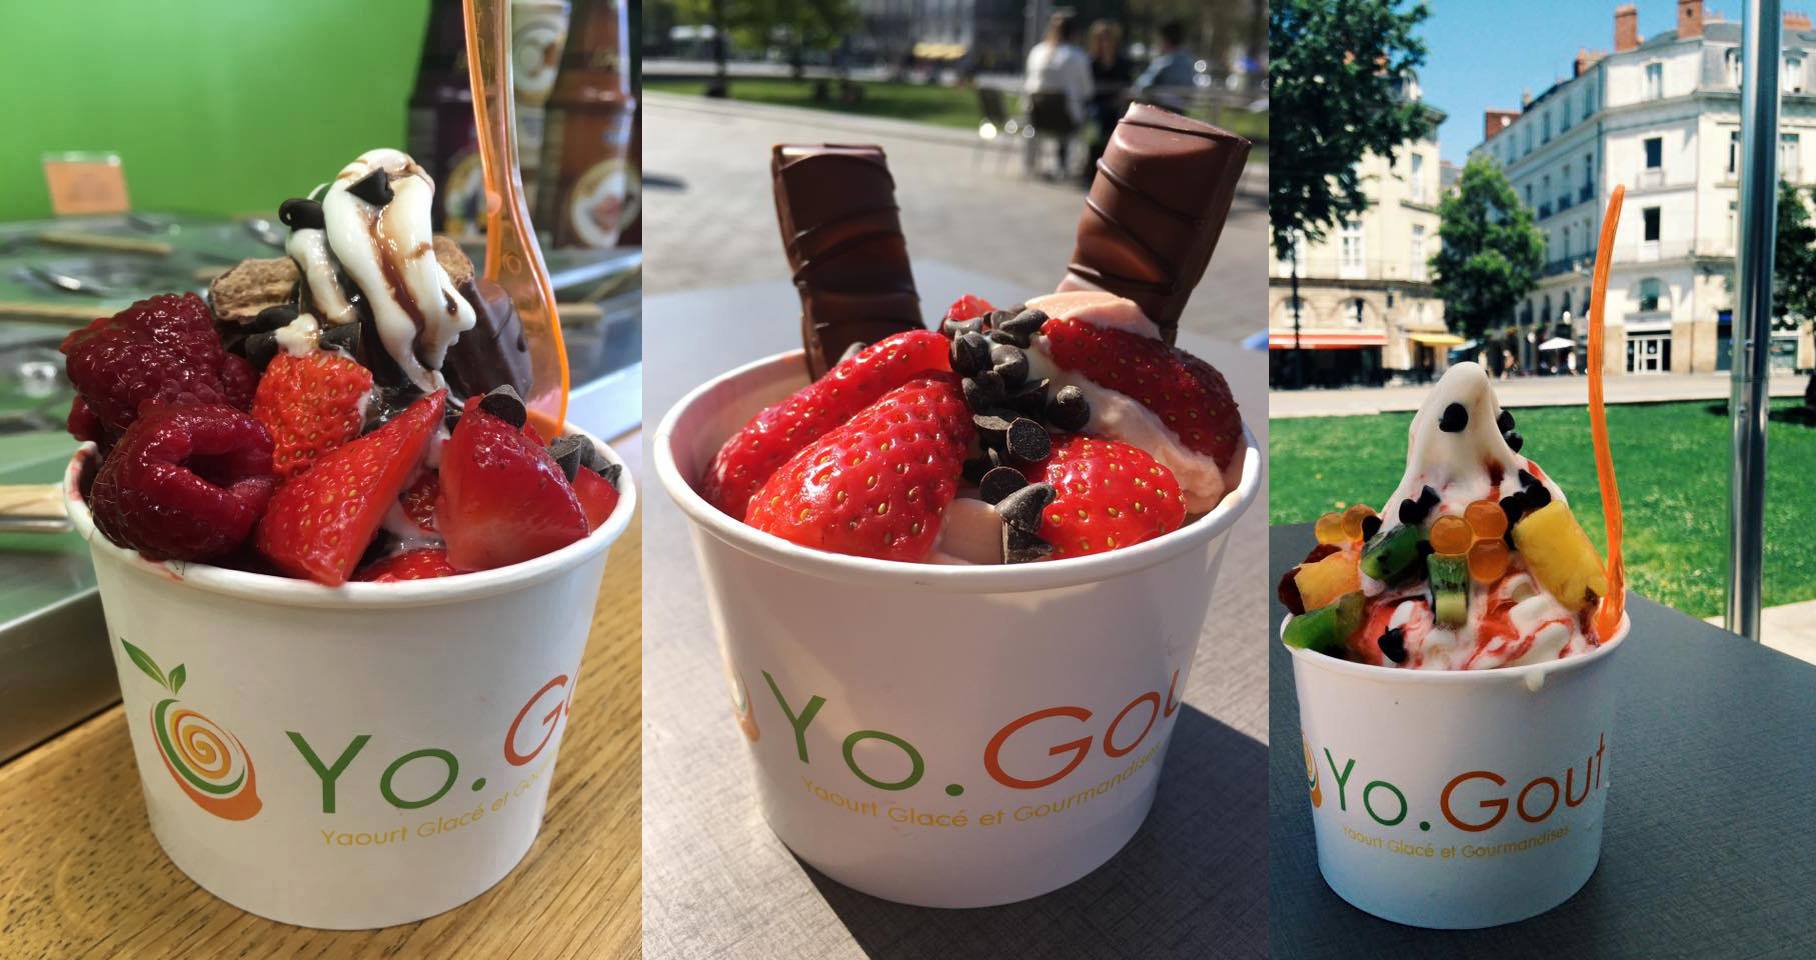 Yo.Gout, magasin de Frozen Yogurt à Nantes